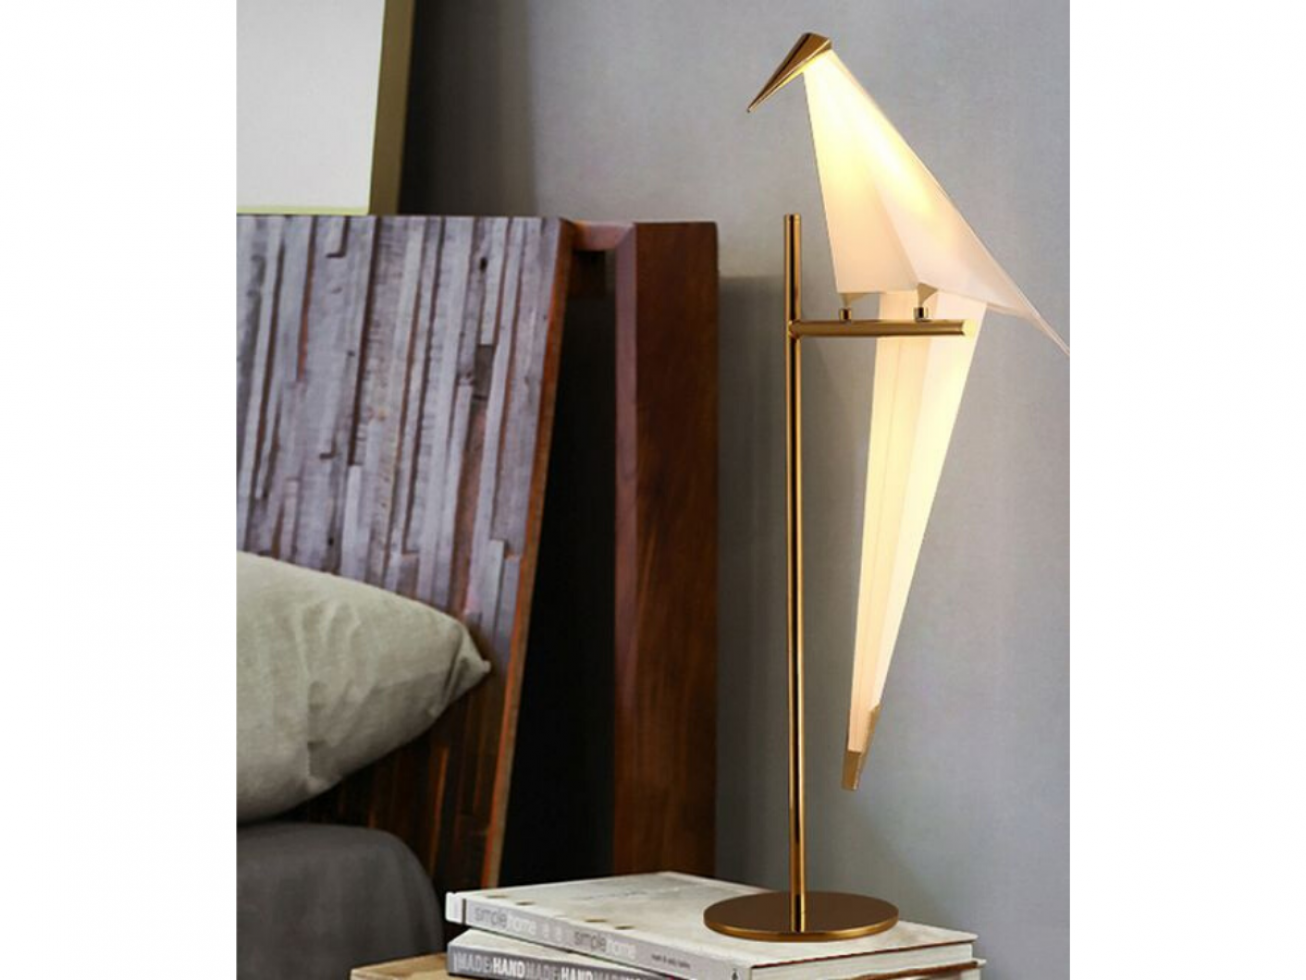 IP-ALF ARTISTIC LED FLOOR LAMP WITH GOLD FINISH